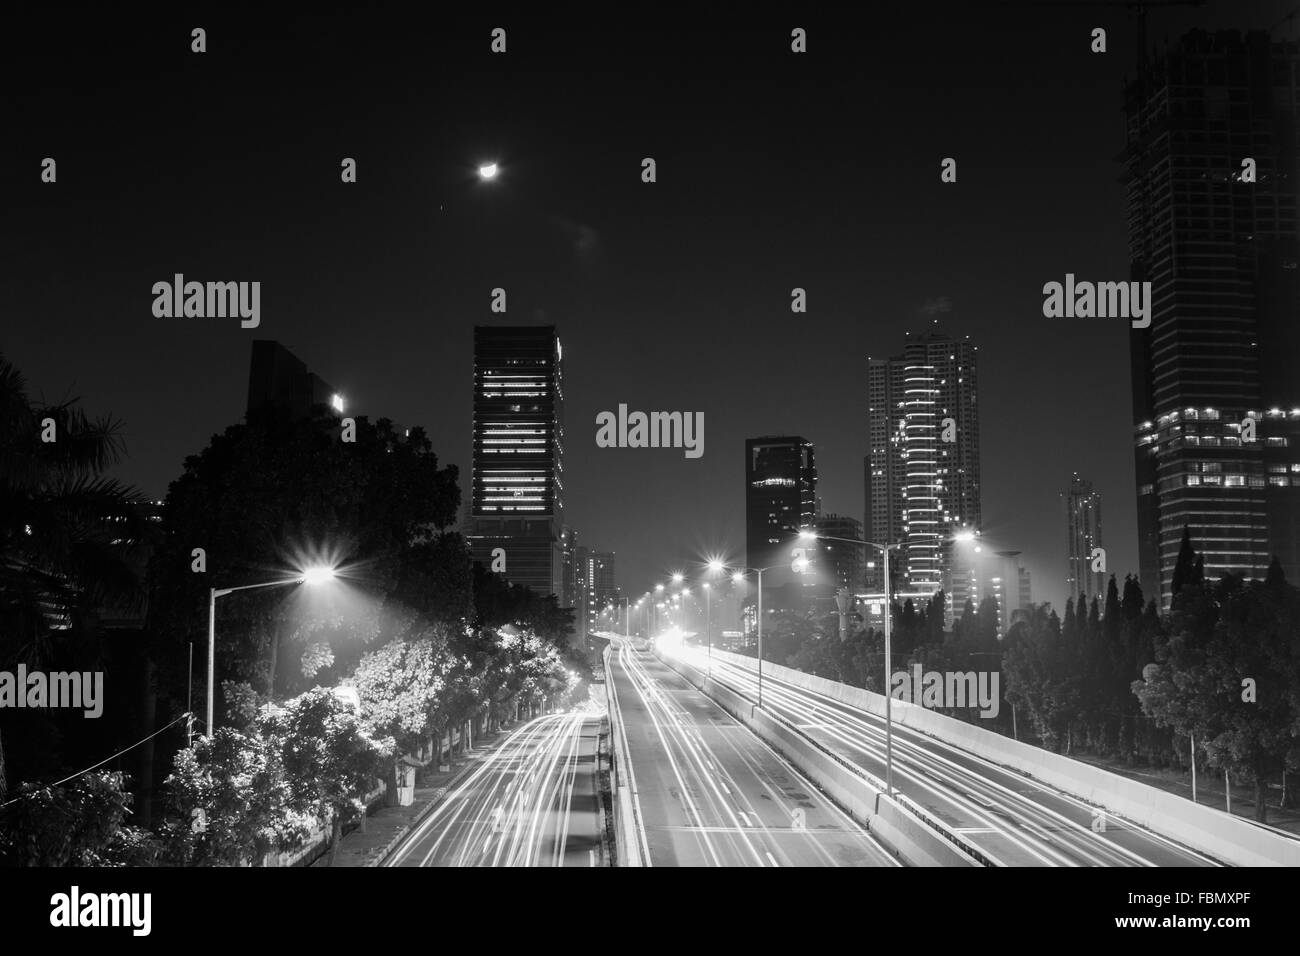 High Angle View Of Light Trails On Road At Night - Stock Image